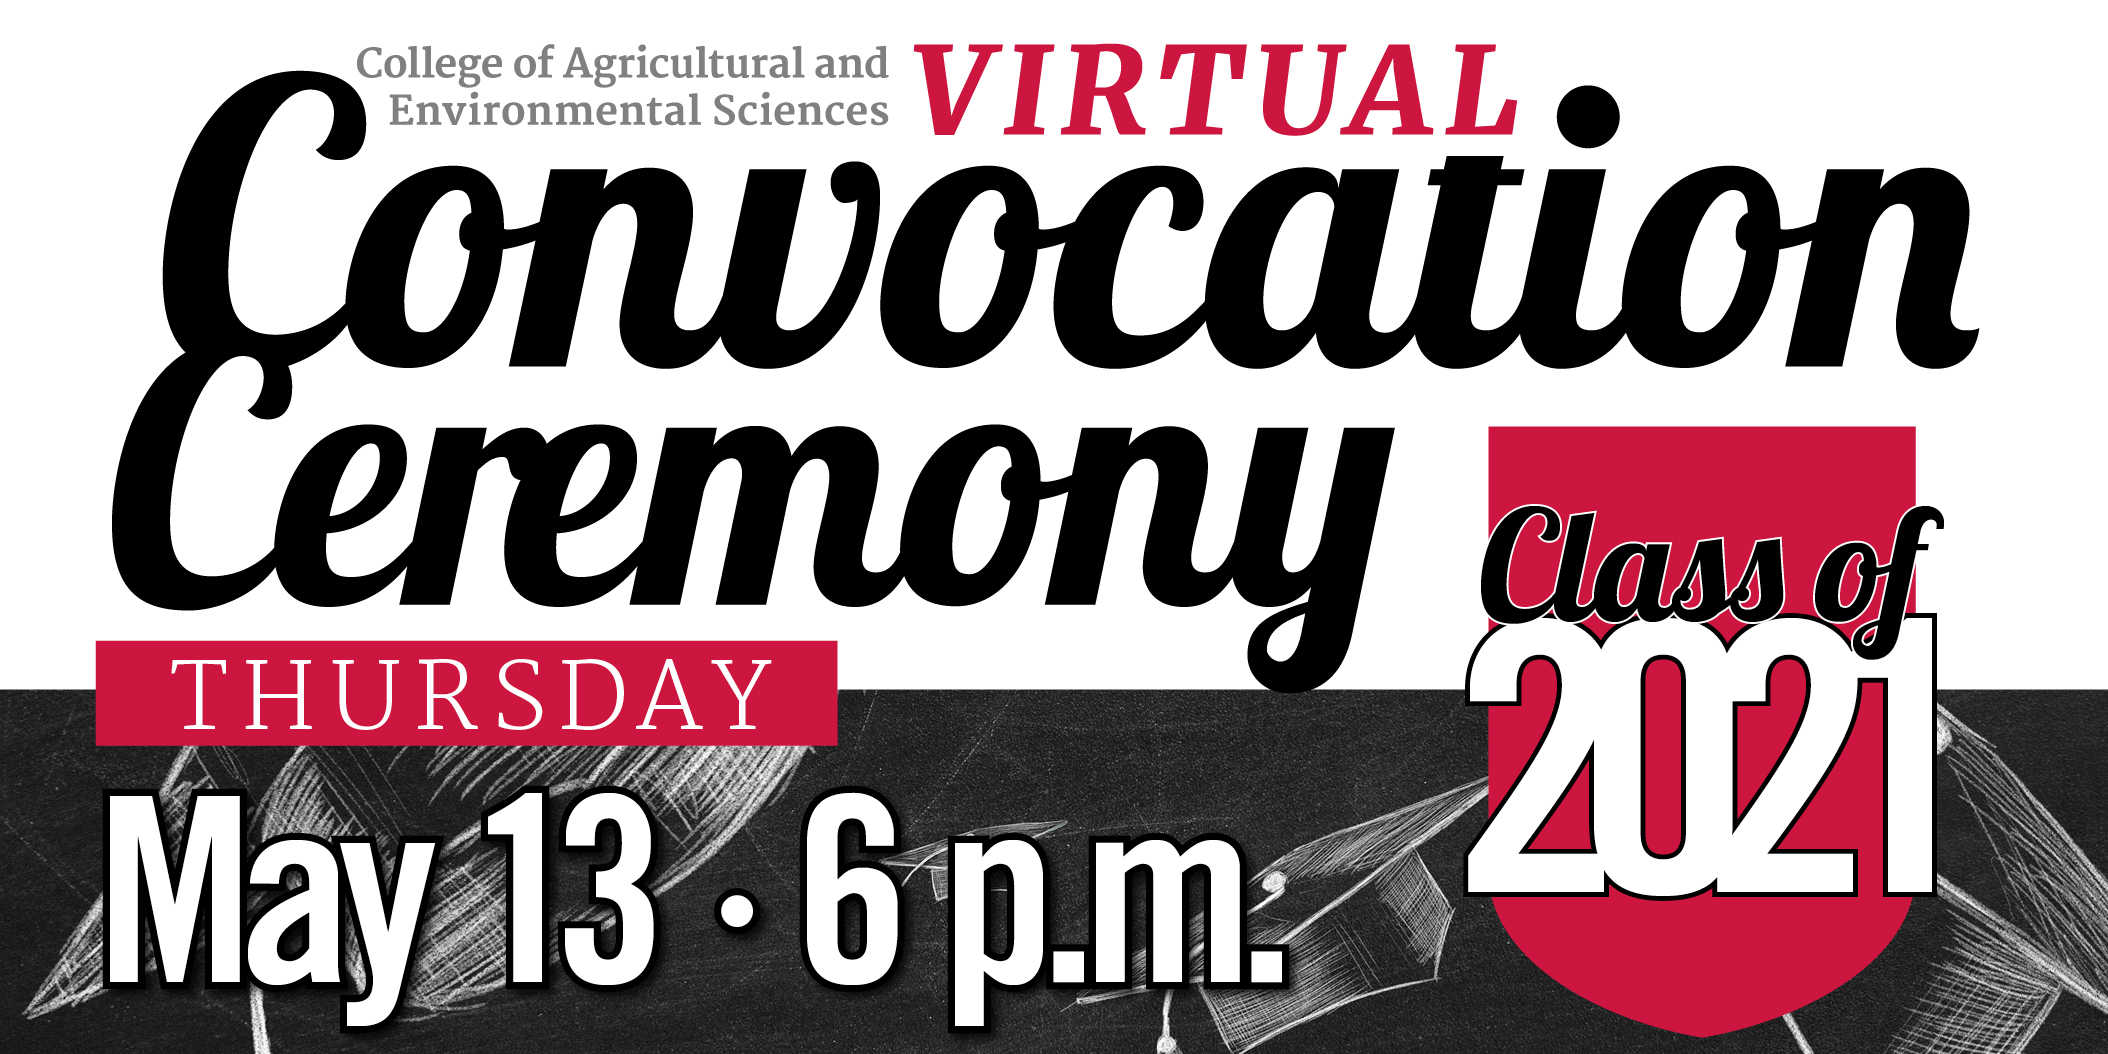 The UGA College of Agricultural and Environmental Sciences will celebrate its graduates virtually on the CAES YouTube channel at 6 p.m. Thursday, May 13. Faculty, staff, students, friends and family are encouraged to tune in and cheer on the college's newest alumni in the live chat.